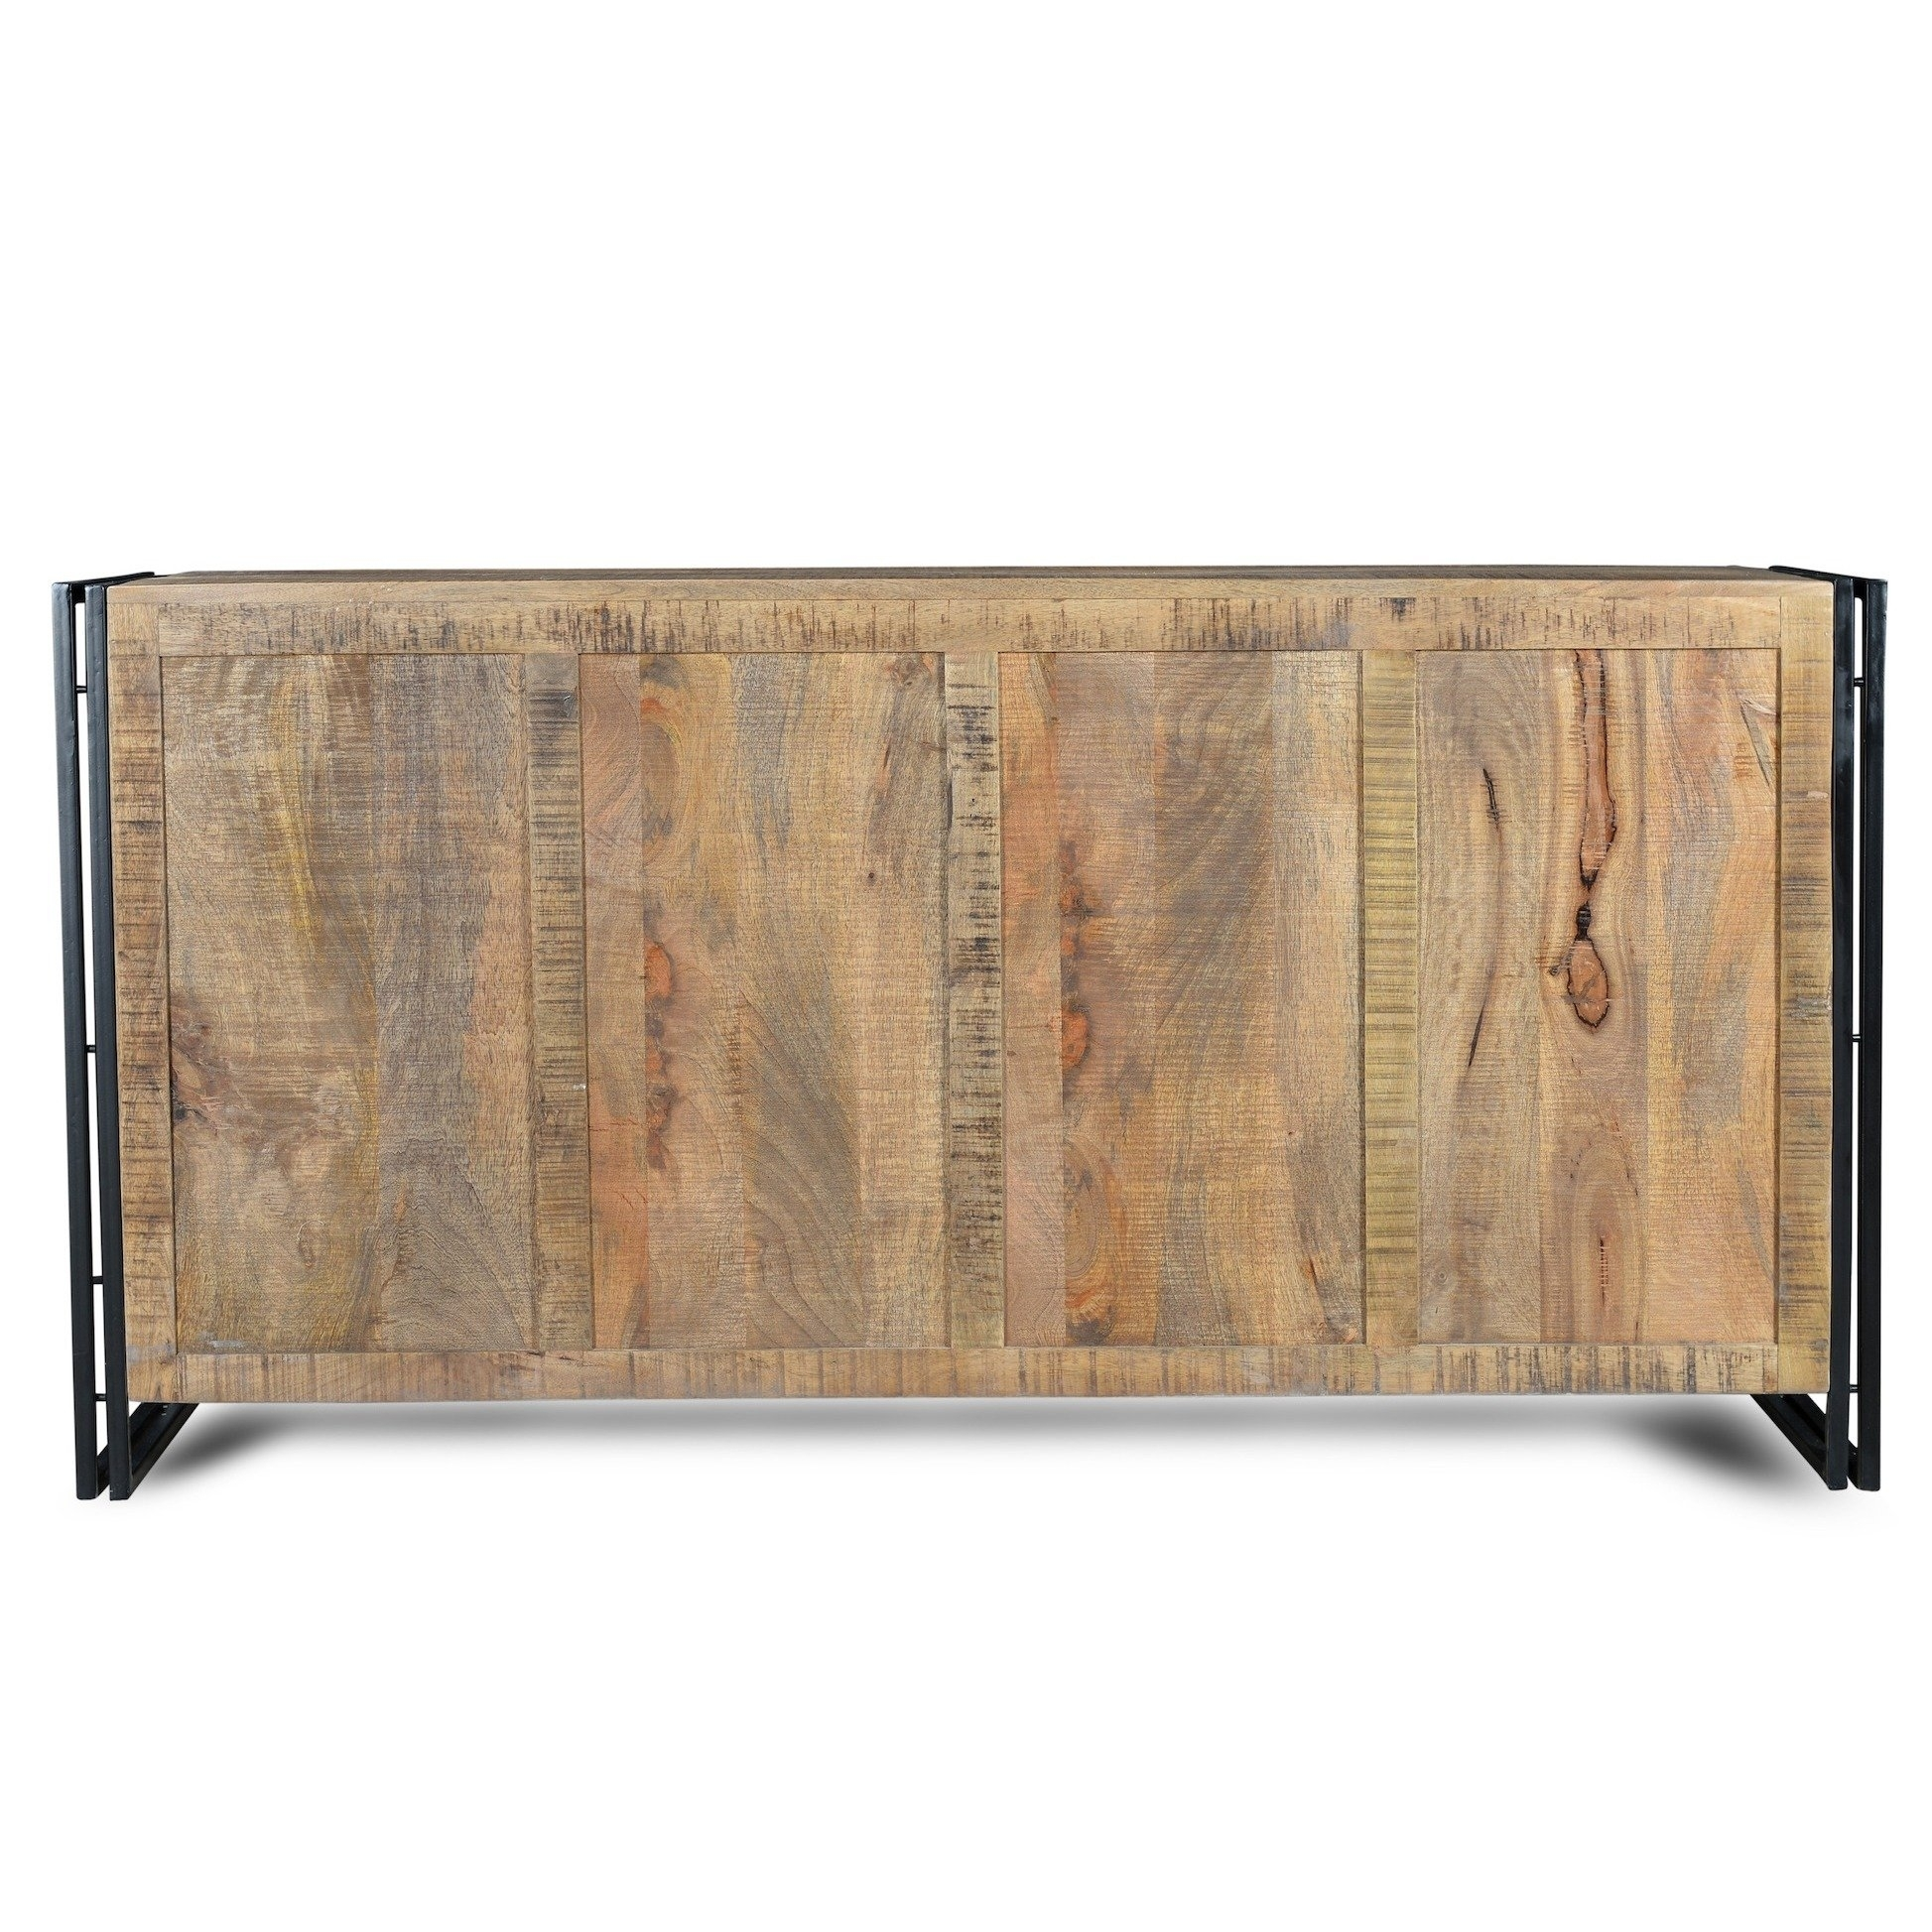 Shop Handmade Industrial Reclaimed Wood And Iron Sideboard (India With Recent Reclaimed Sideboards With Metal Panel (#14 of 20)